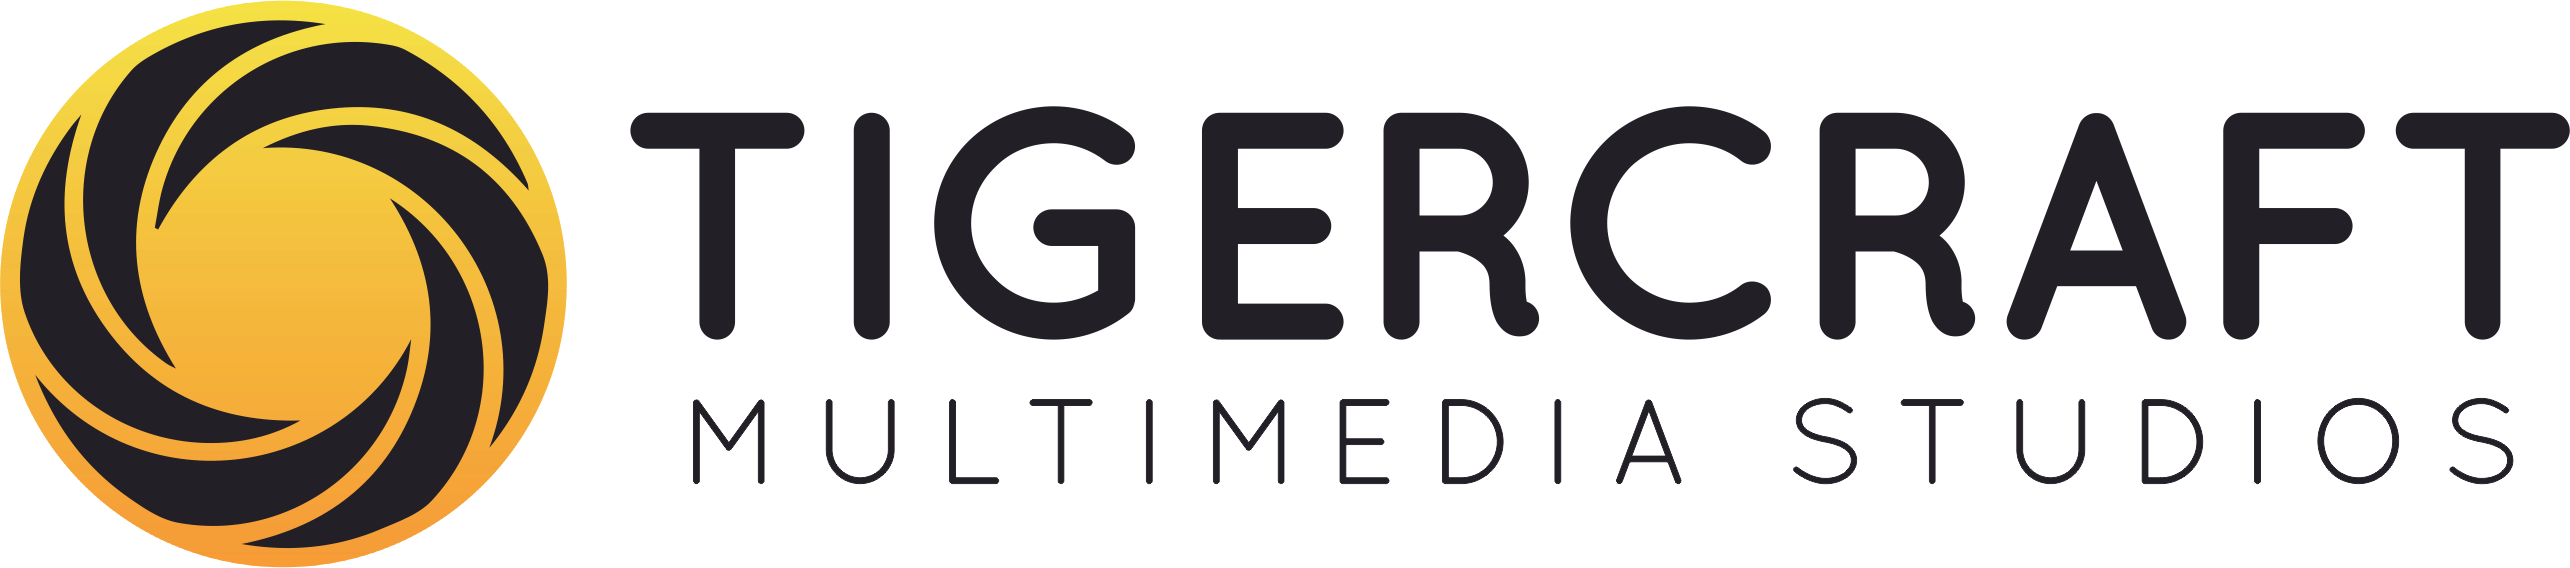 Tigercraft Multimedia Studios